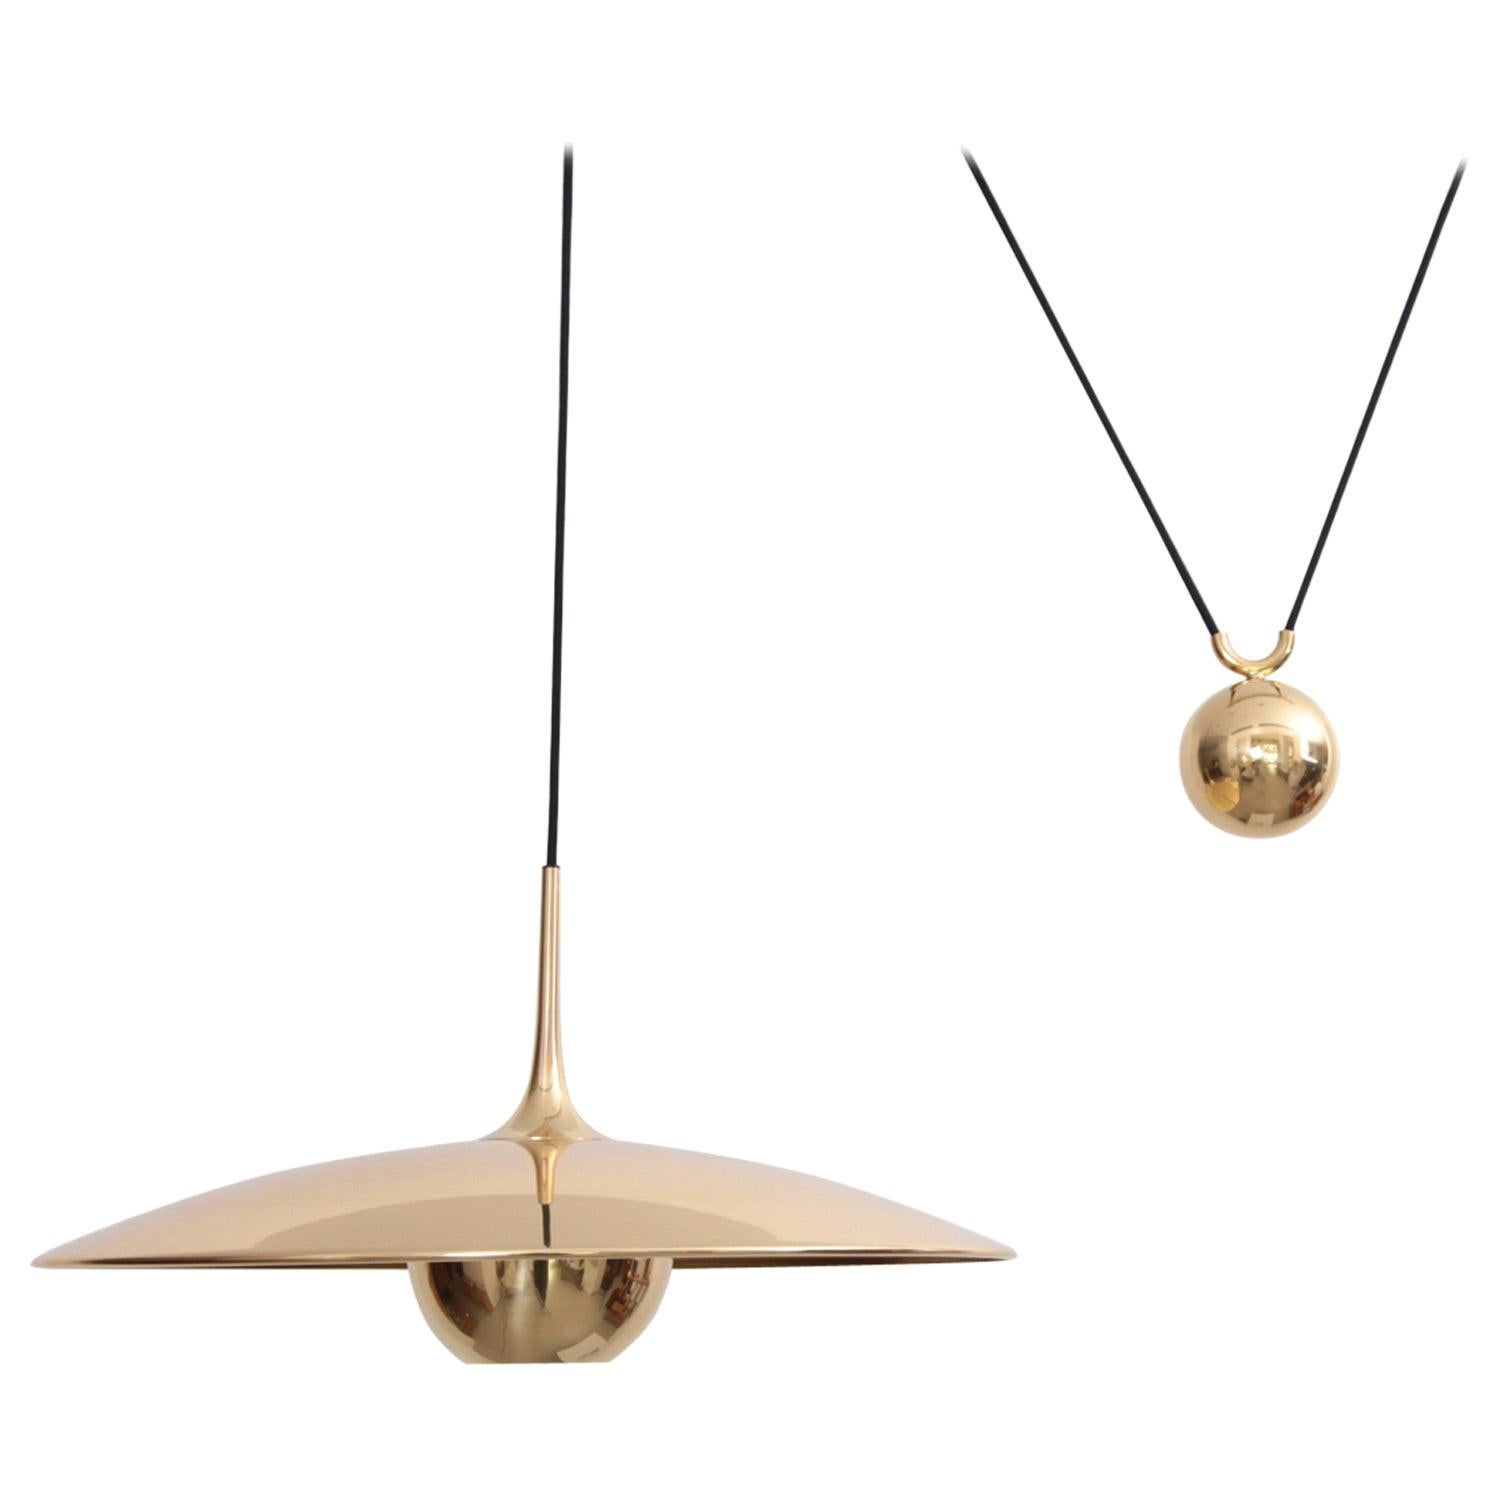 Mint Florian Schulz Onos Polished Brass with Side Counterweight